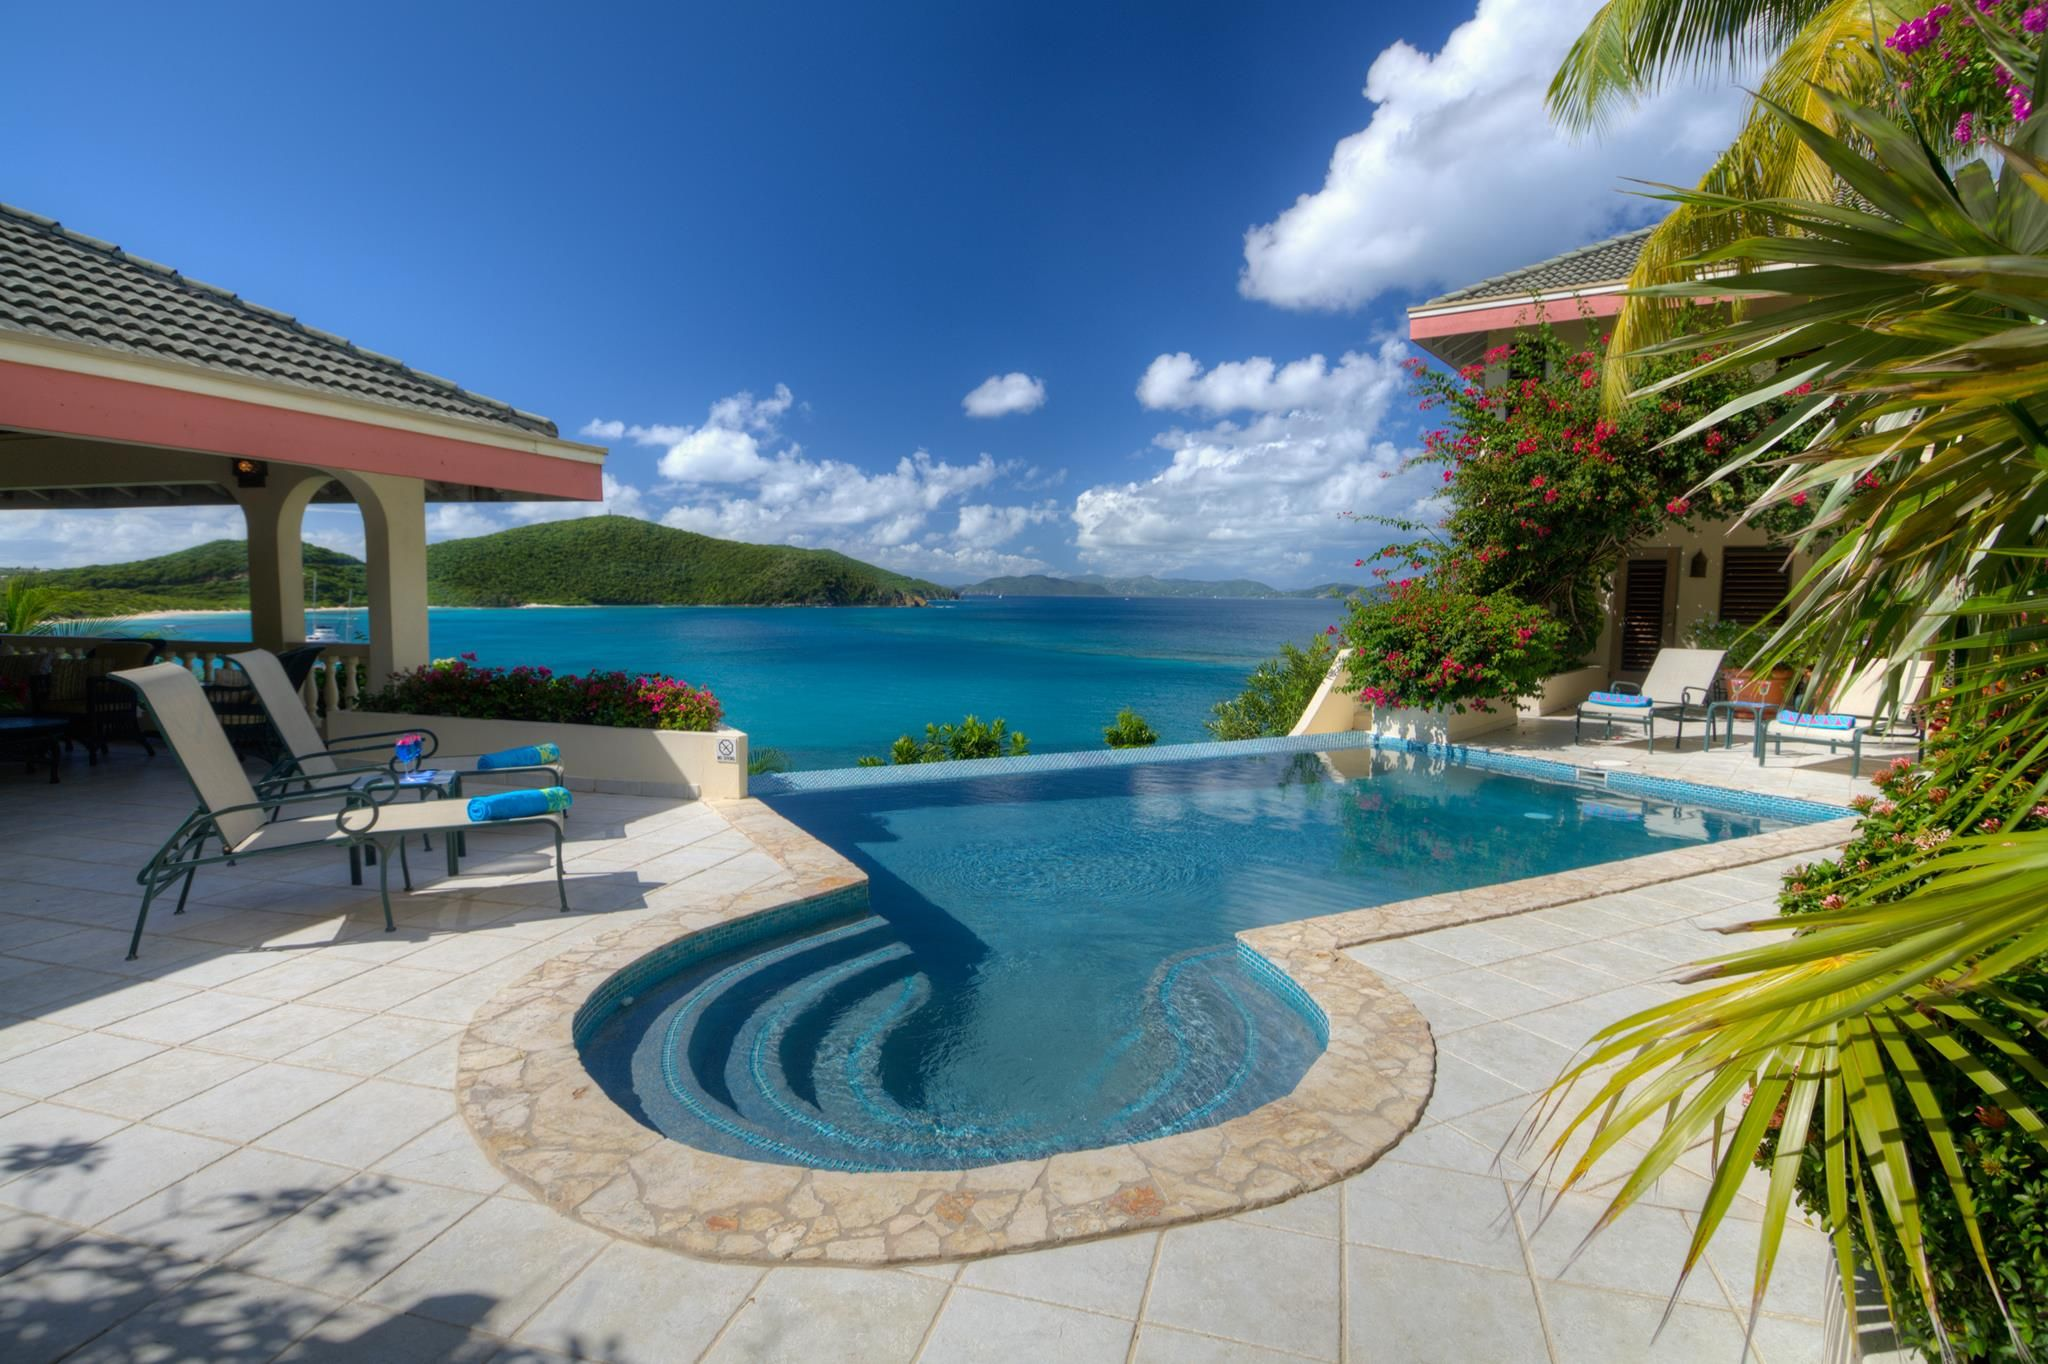 Luxury Villa, With Breathtaking Views Of The Caribbean, Is Truly